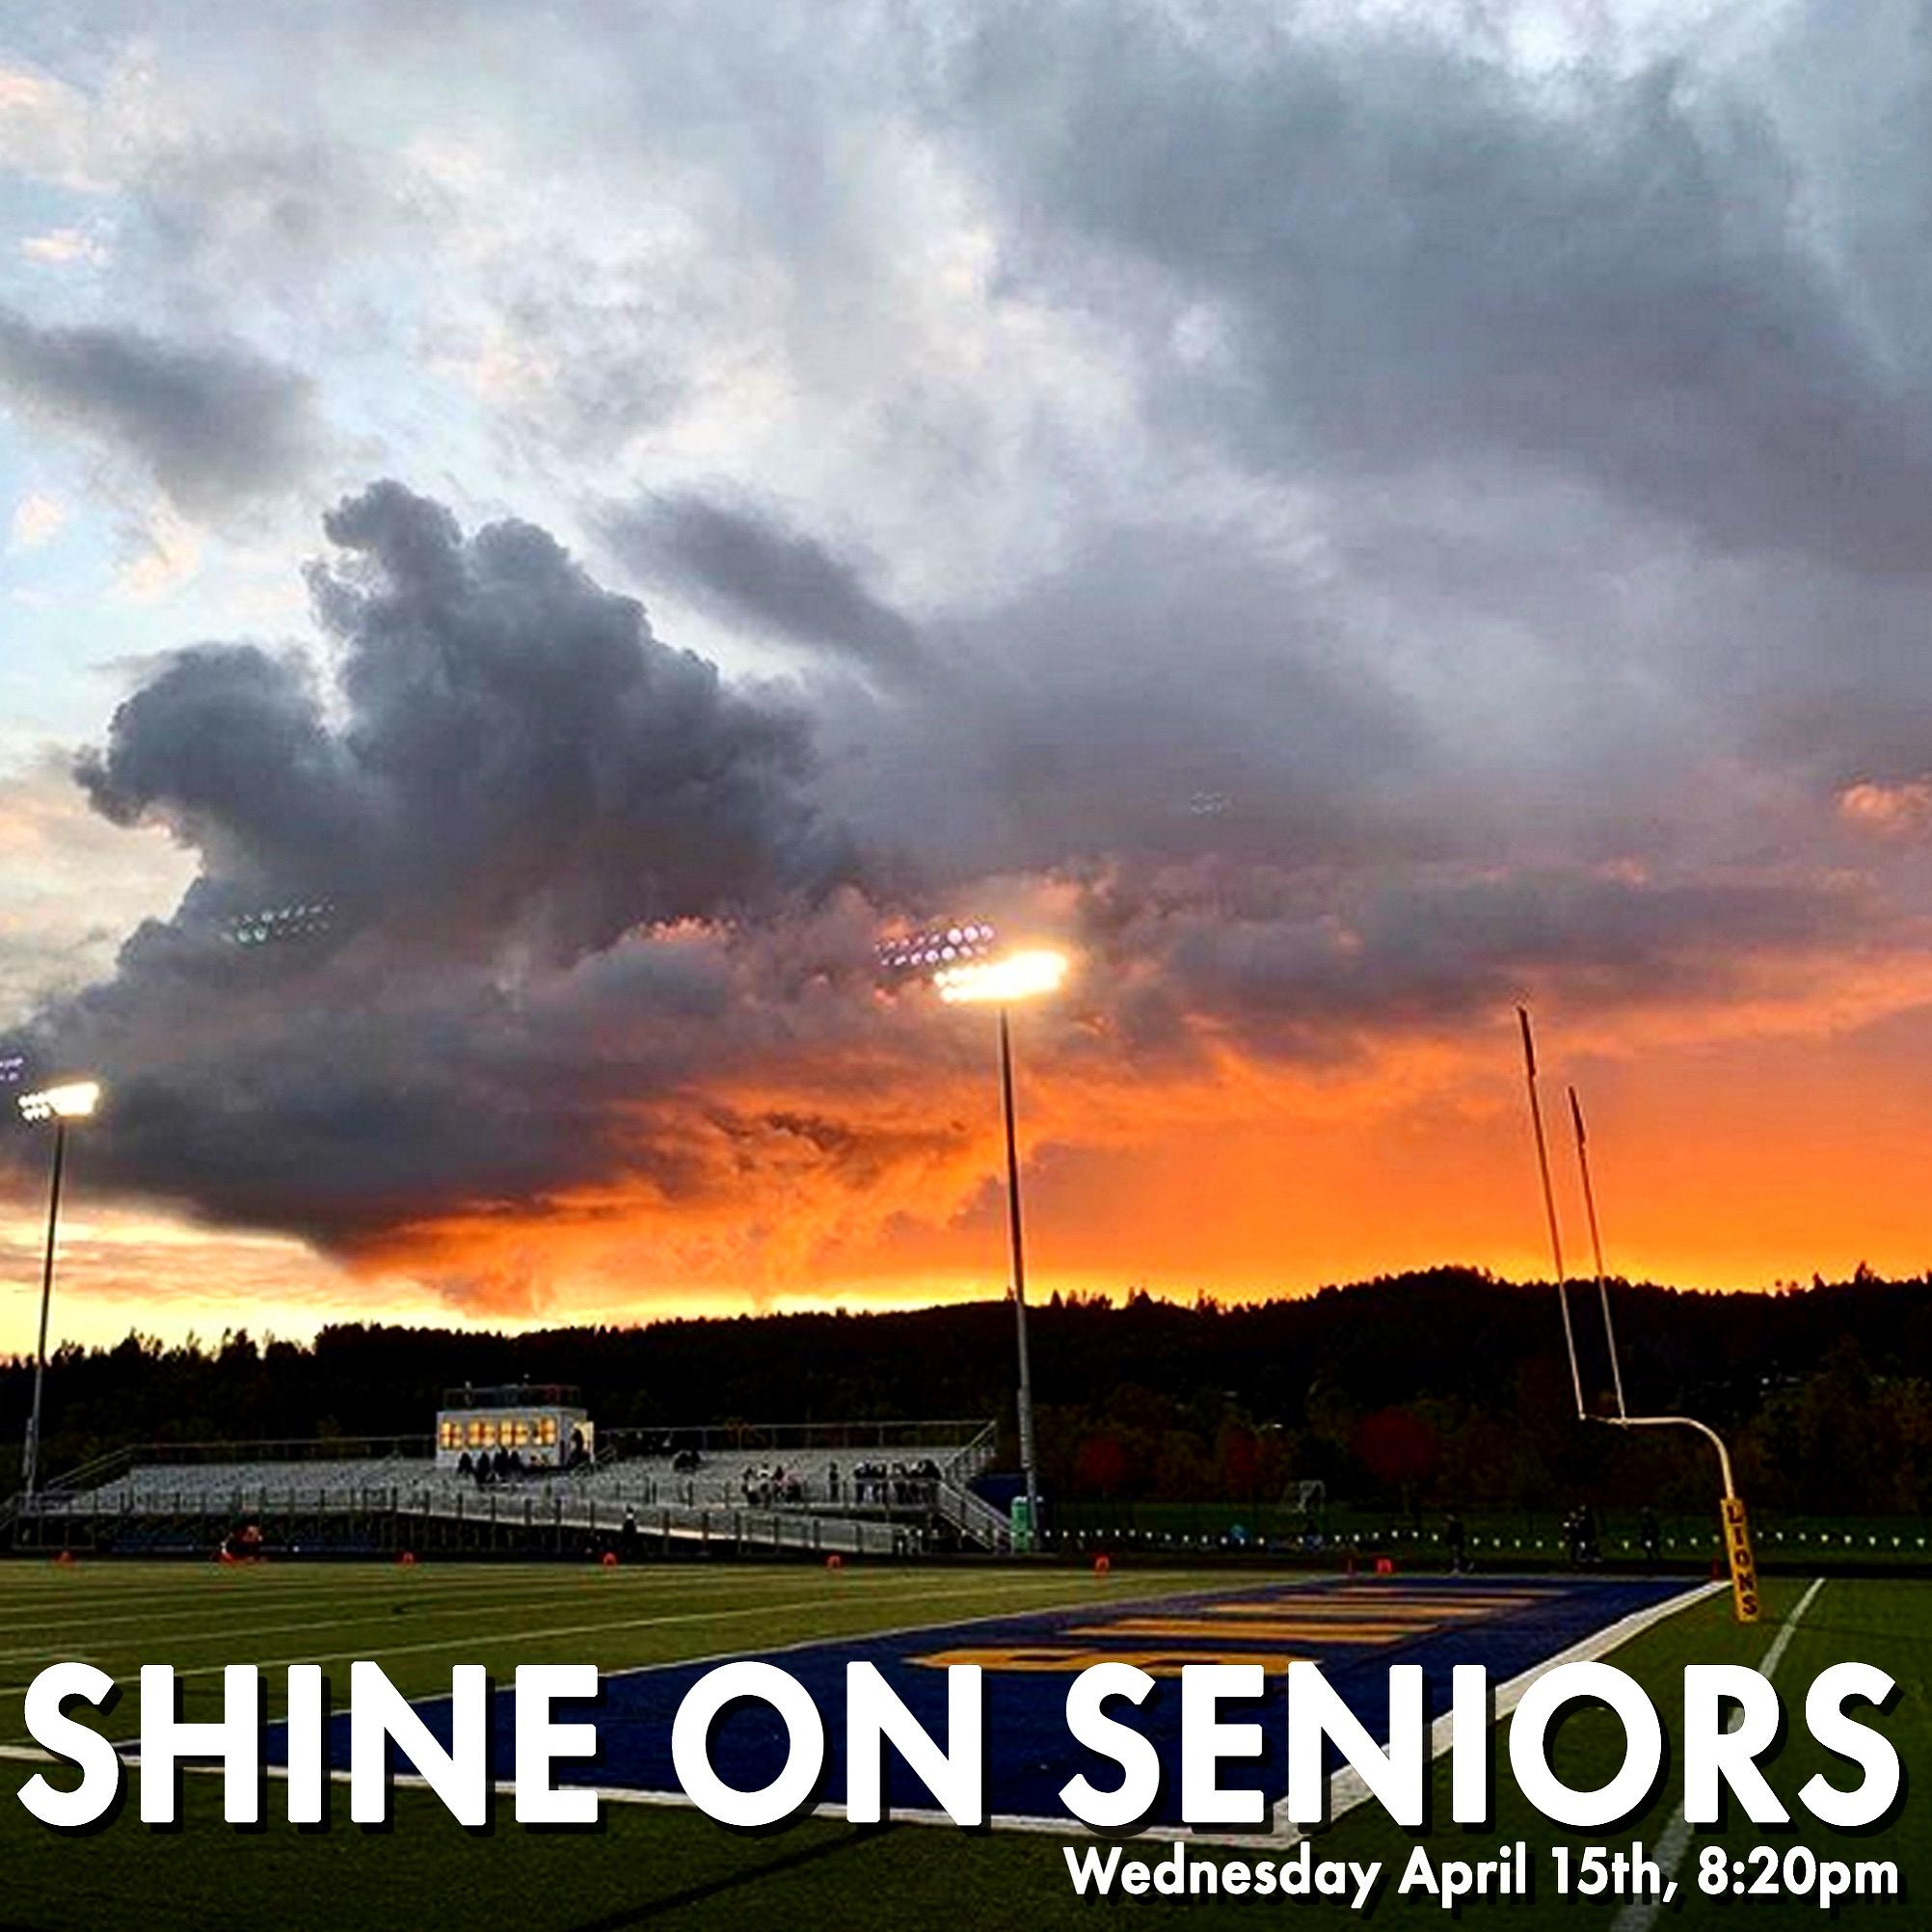 Shine on Seniors